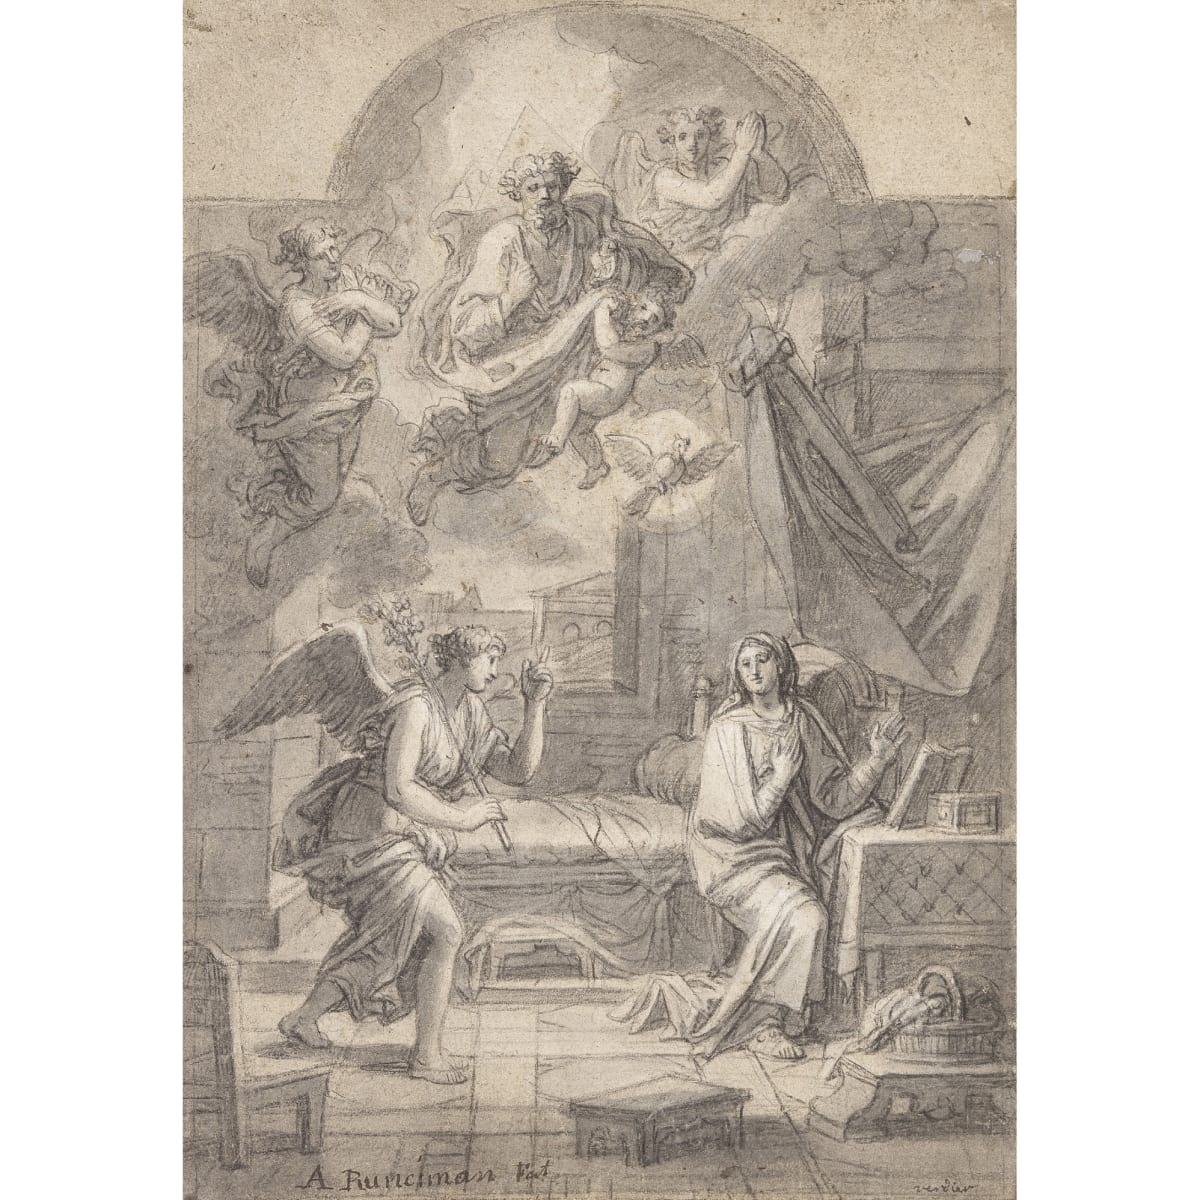 Alexander Runciman The Annunciation, a study for an altarpiece, after François Verdier (1651-1730) signed 'A Runciman Fec' and inscribed 'Verdier' pencil and grey wash 14 x 9 3/4 inches